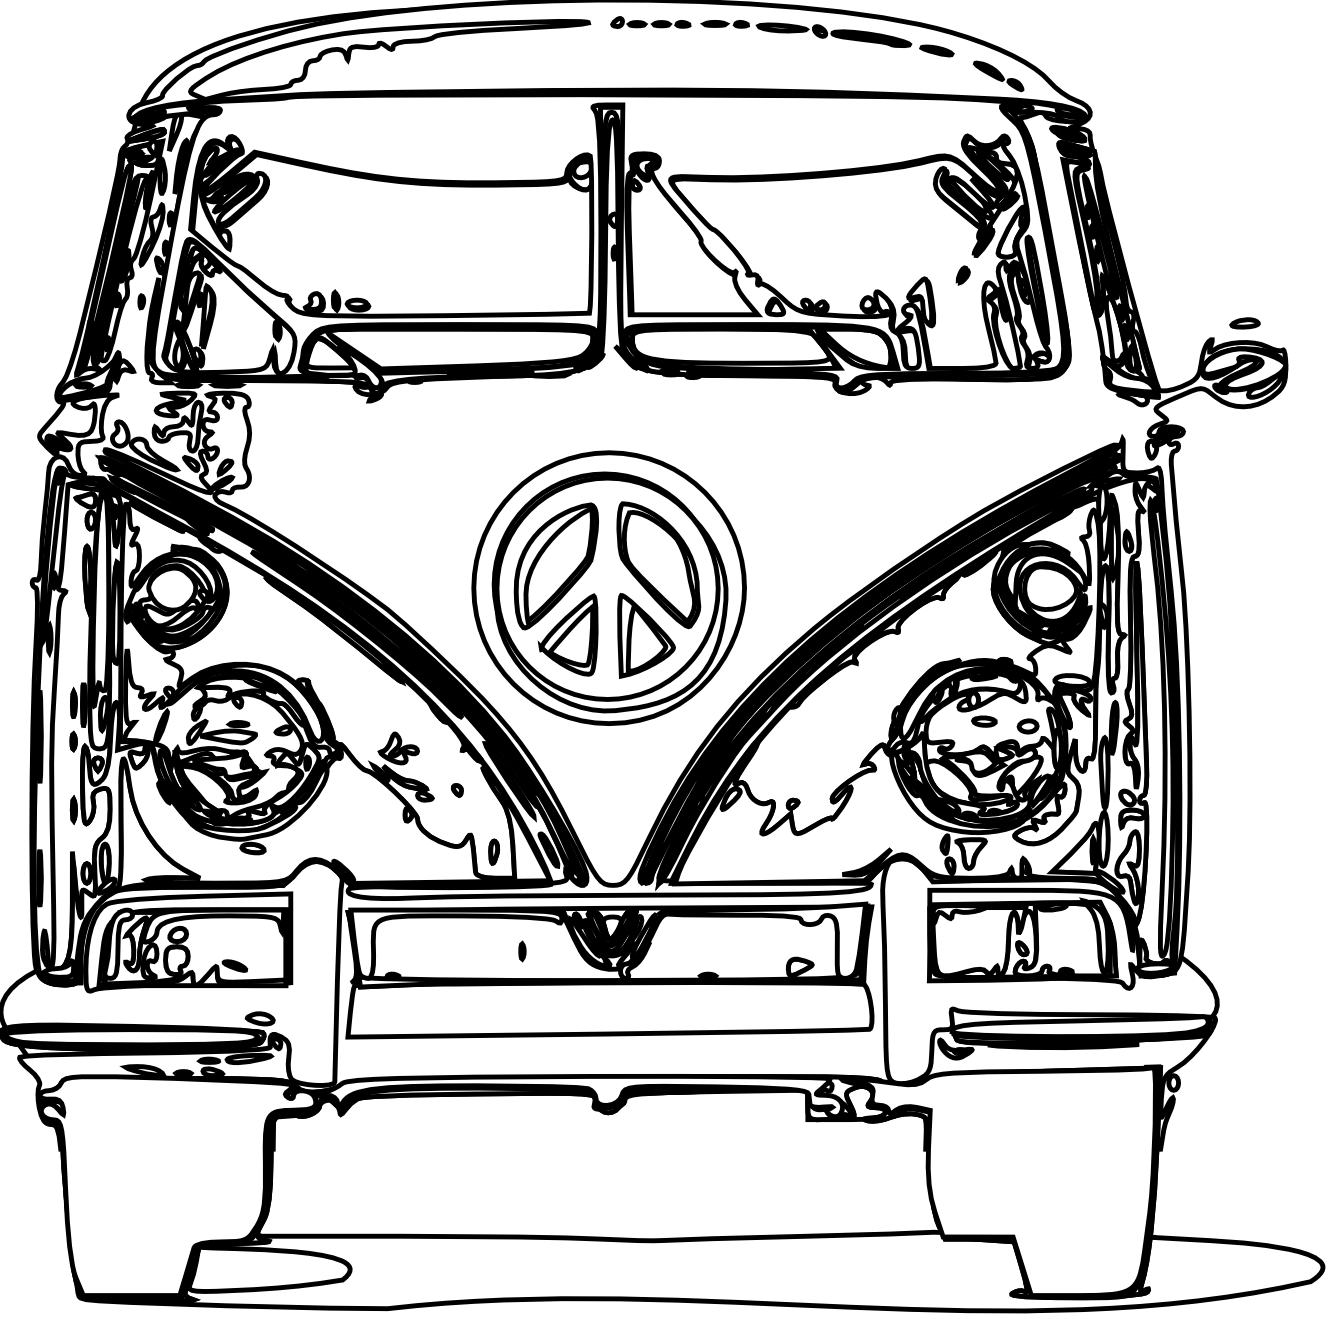 jpg freeuse download Camper clipart black and white. Art clip clipartist net